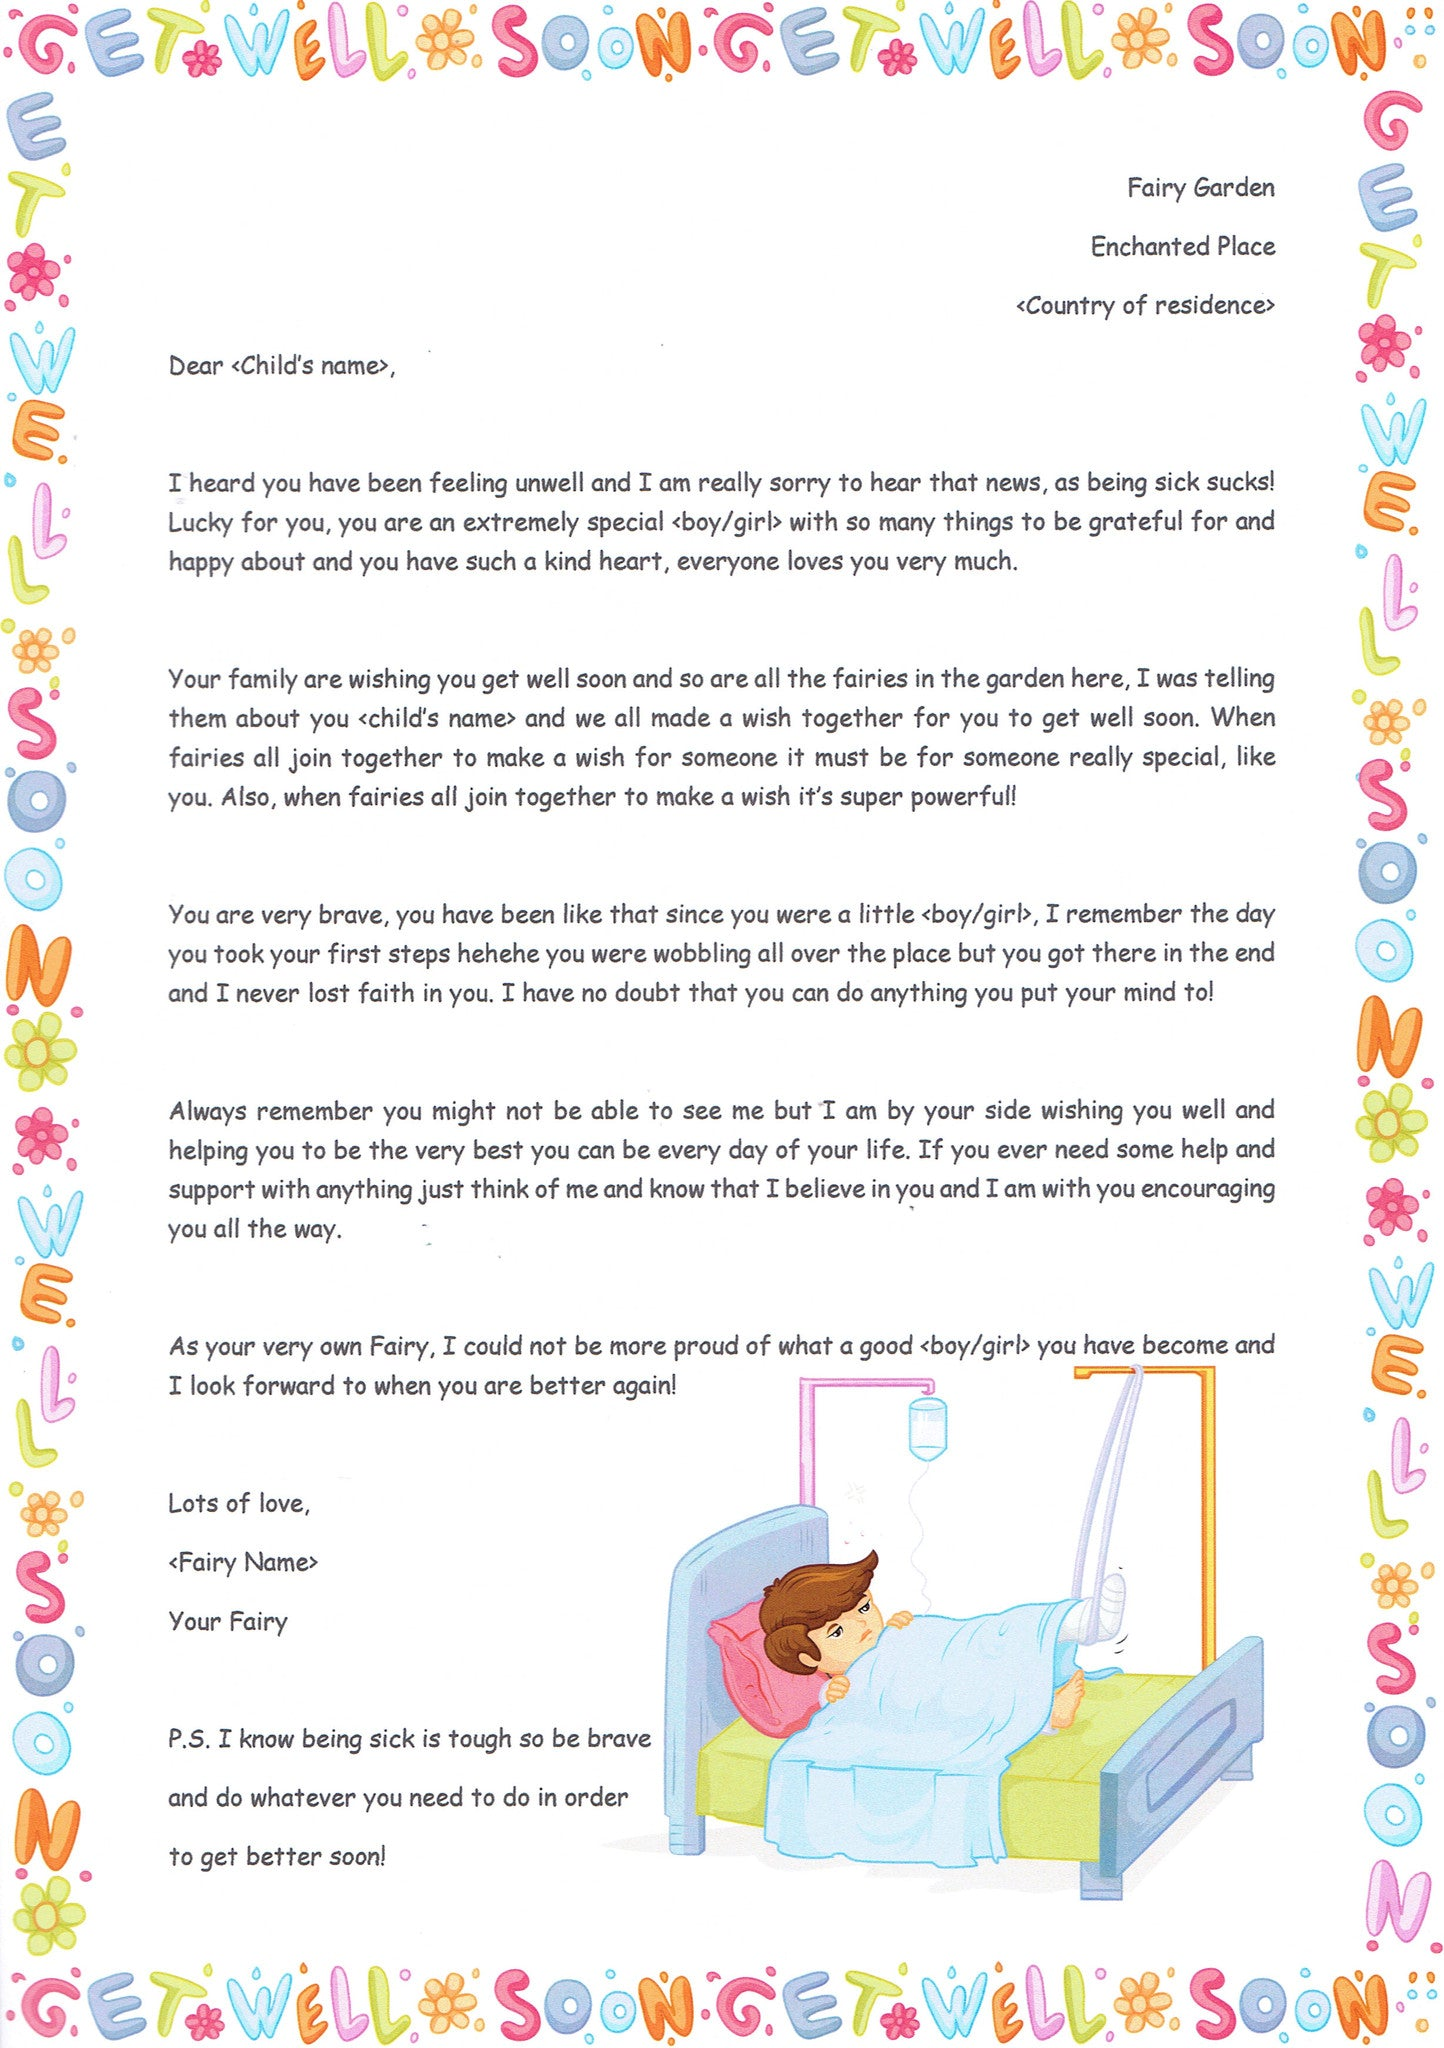 Get Well Soon Letter | The Letter Fairy